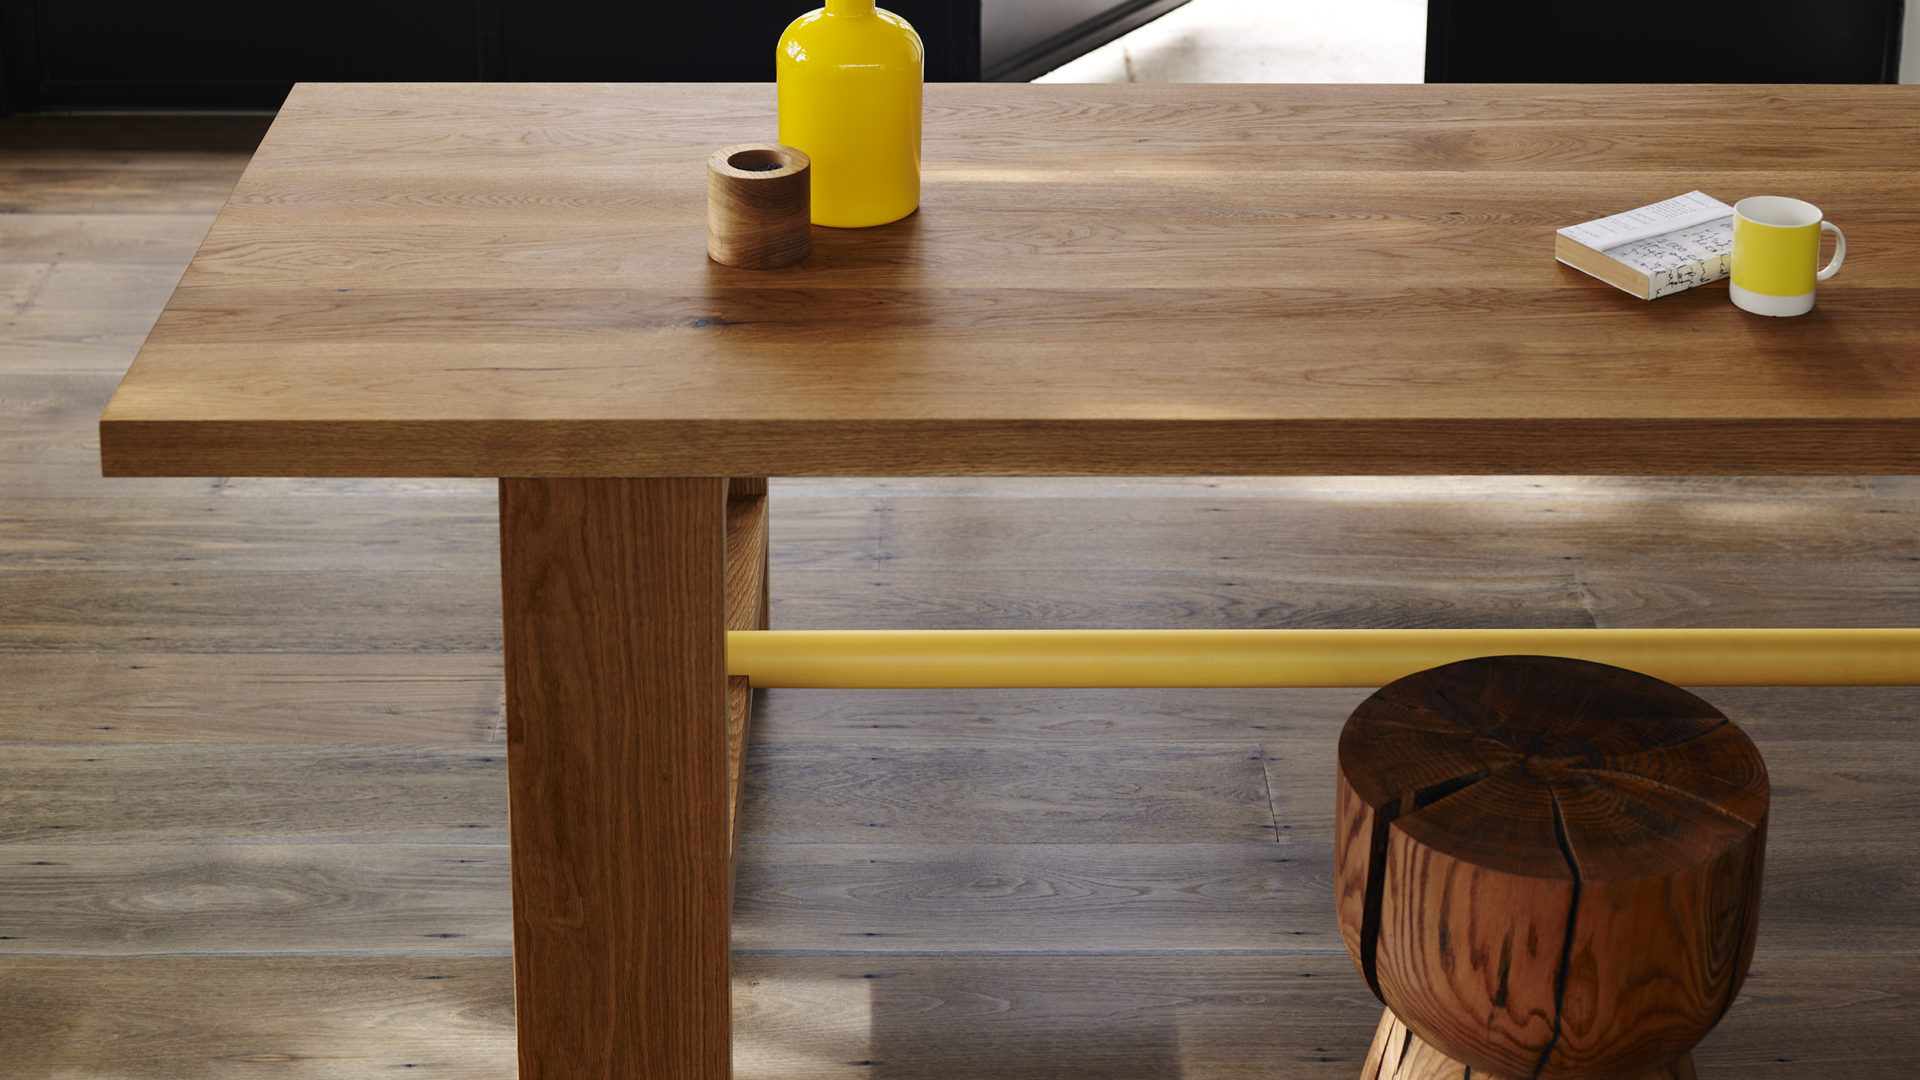 Why Timber is the best material for furniture that you can choose for your home?